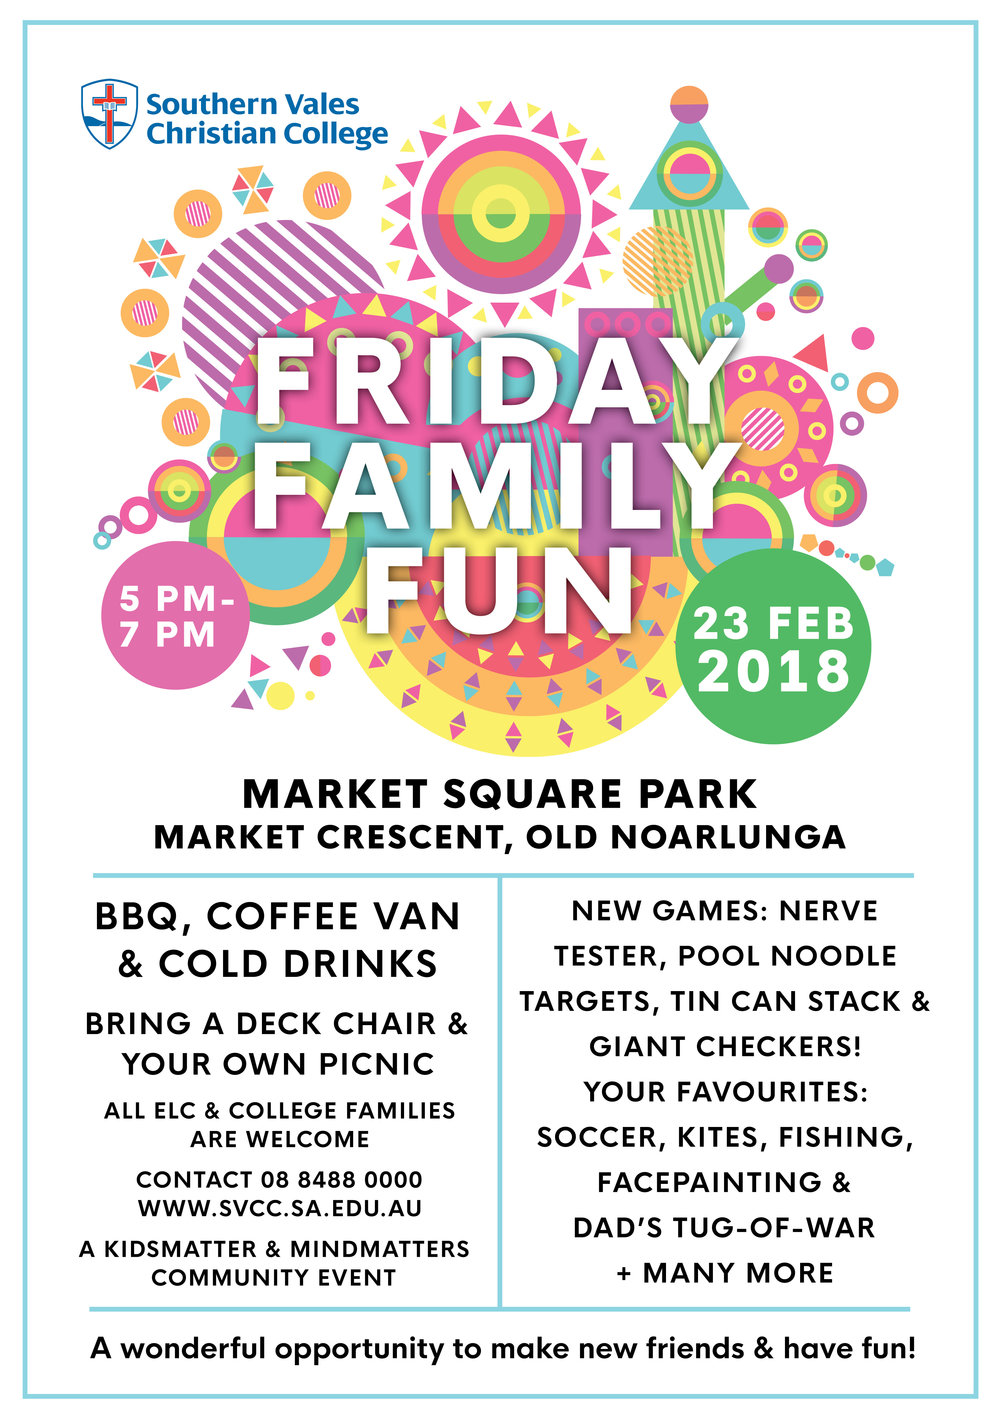 Friday Family Fun Flyer 2018.jpg